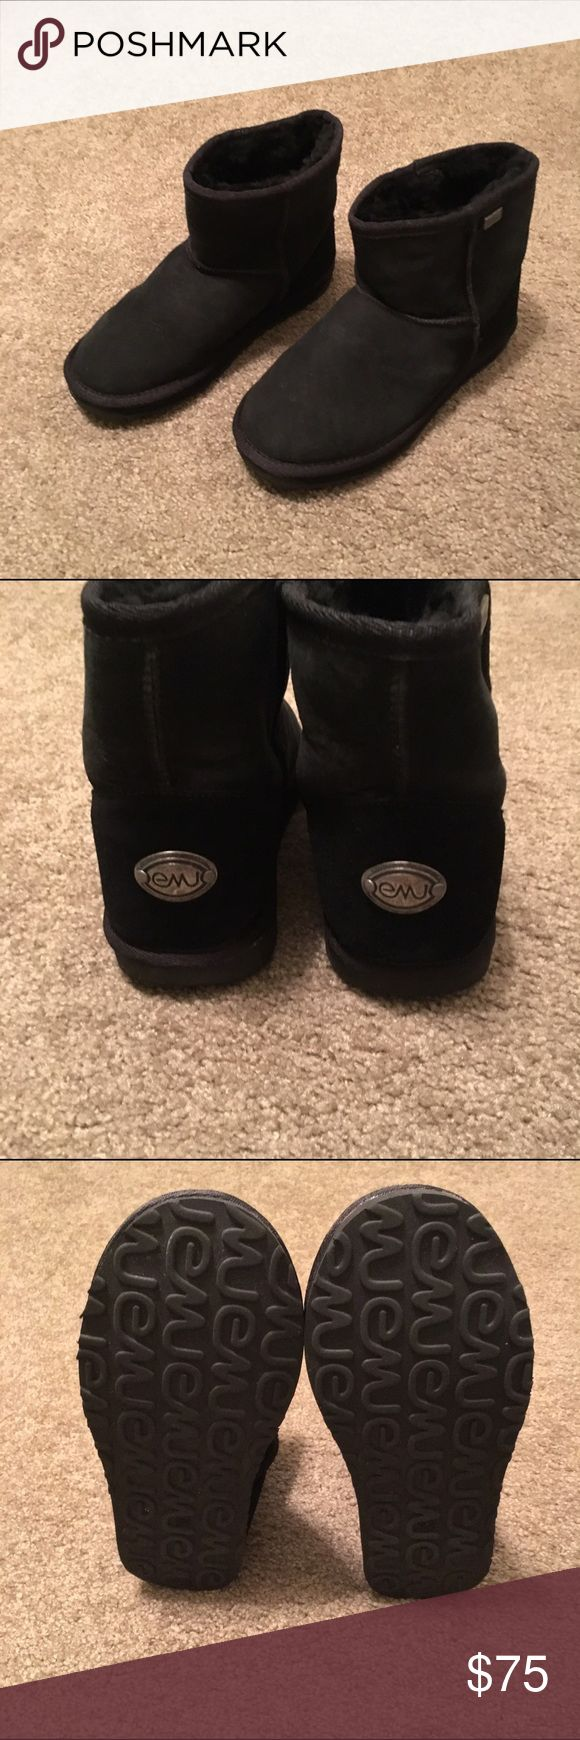 Black Platinum Stinger Mini Emu Boots In perfect condition!!! Black Platinum Stinger Mini Emu Boots!! Worn once then moved to Florida!!! Original box and all!! Size 9. Emu Shoes Winter & Rain Boots